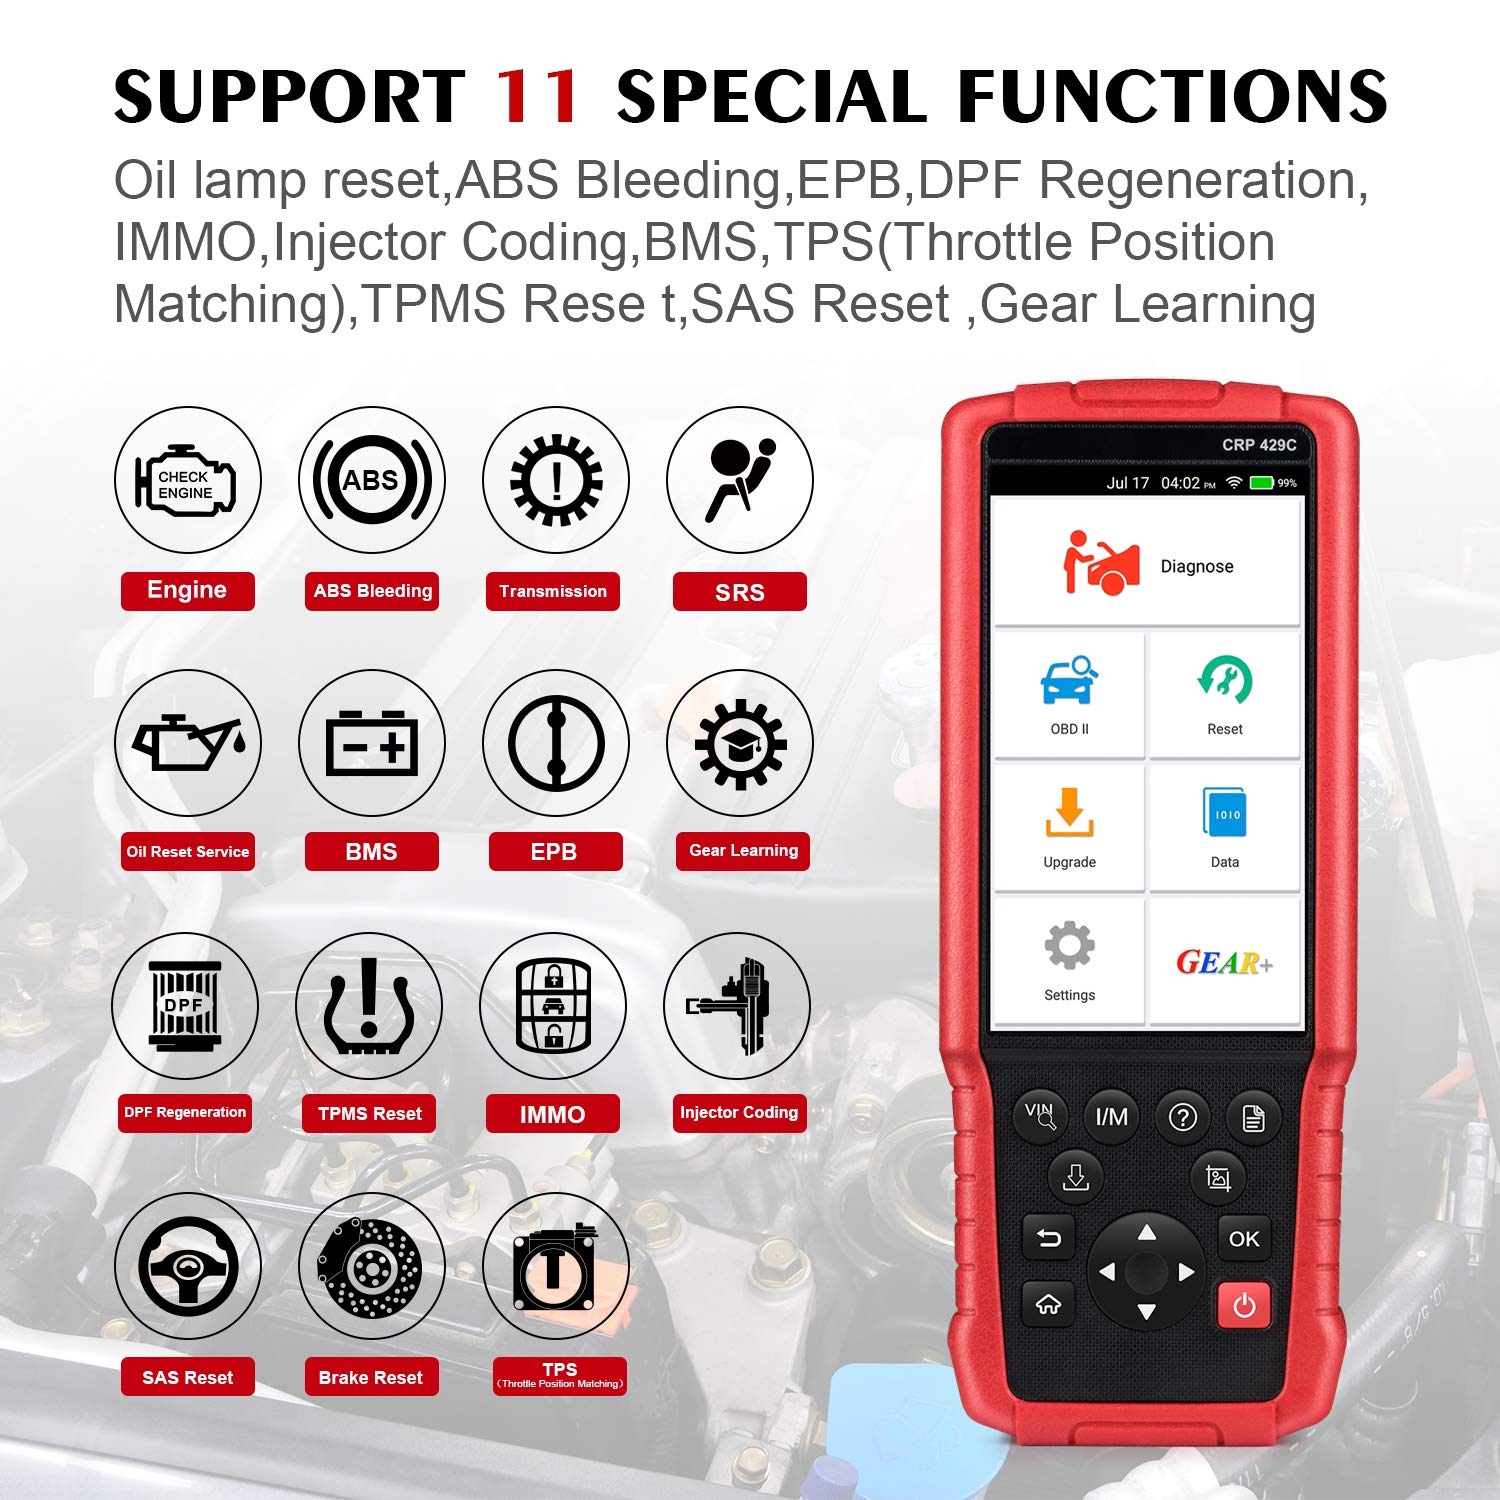 LAUNCH CRP429C OBD2 Diagnostic Scan Tool ENG/TCM/ABS/SRS with Oil Lamp Reset,ABS Bleeding,EPB,DPF Regeneration,IMMO,Injector Coding,BMS,TPMS Reset,SAS+EL50448 TPMS As Gift by LAUNCH (Image #3)